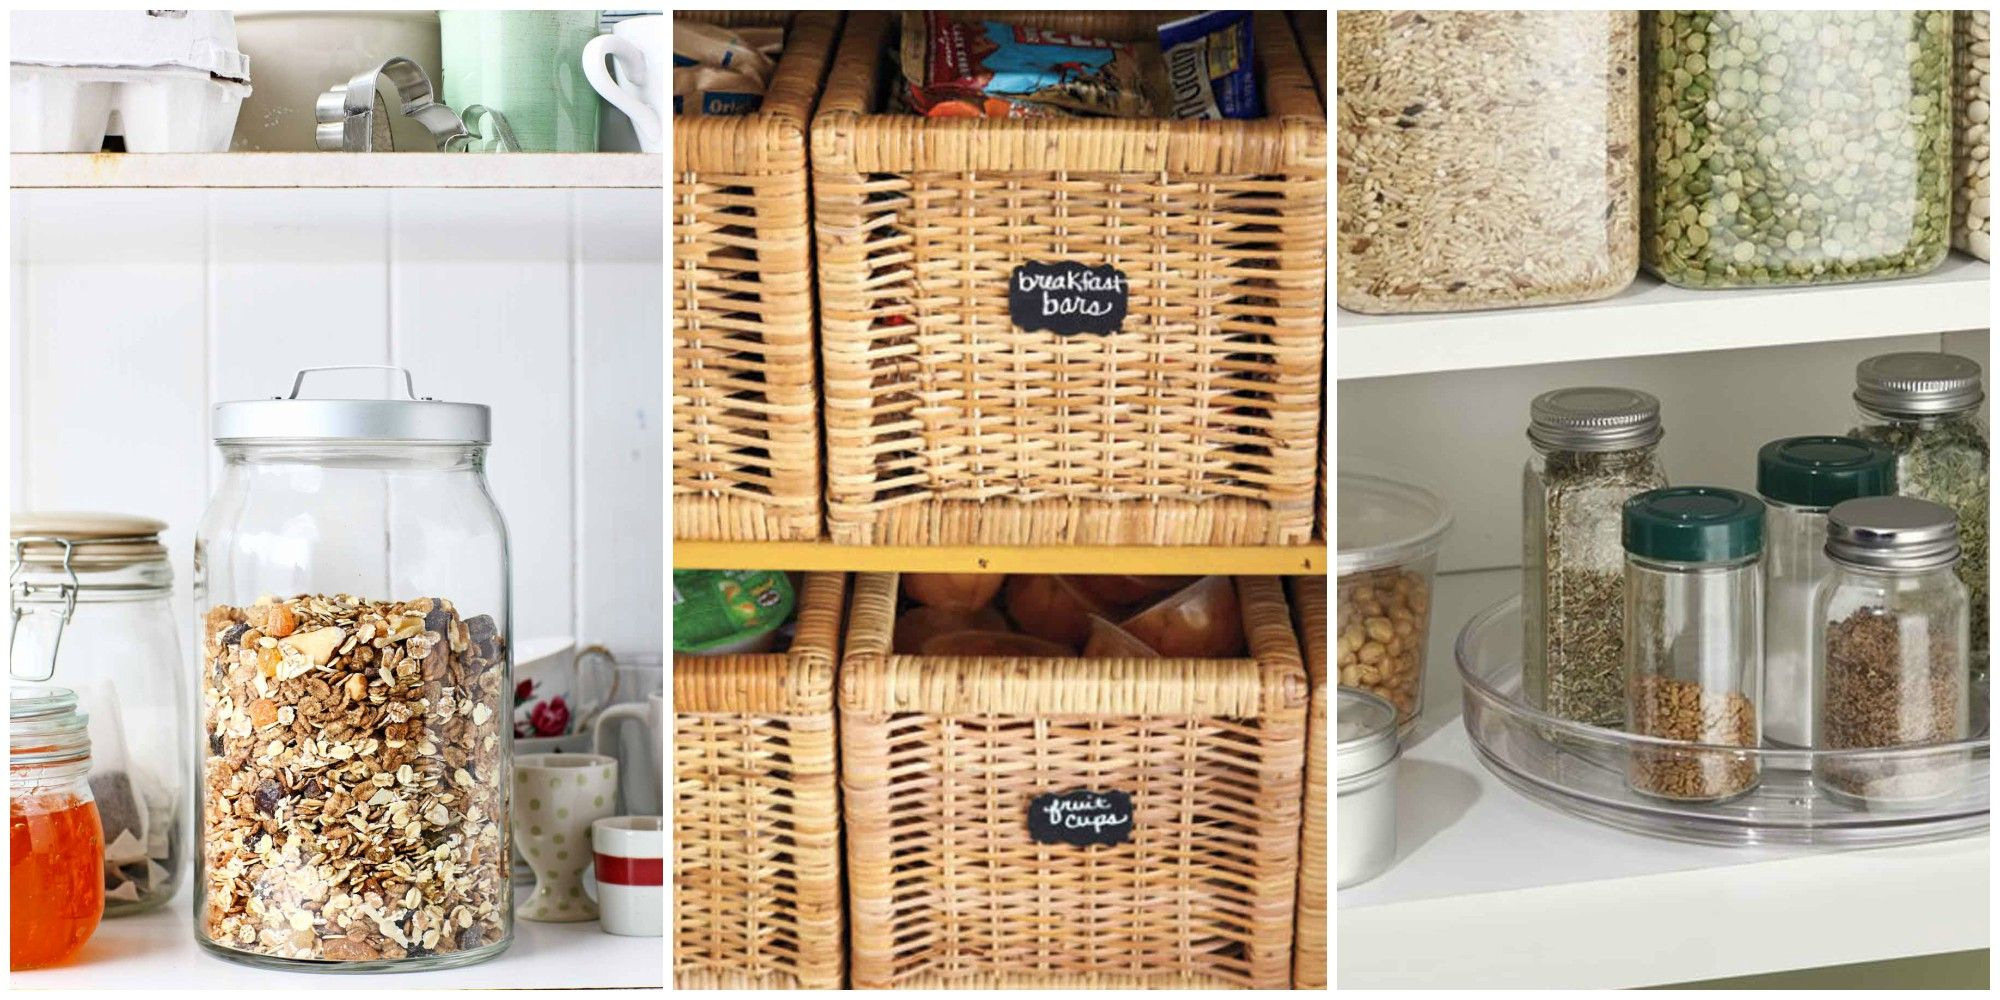 Pantry Organization 15 Pantry Organization Ideas How To Organize A Kitchen Pantry